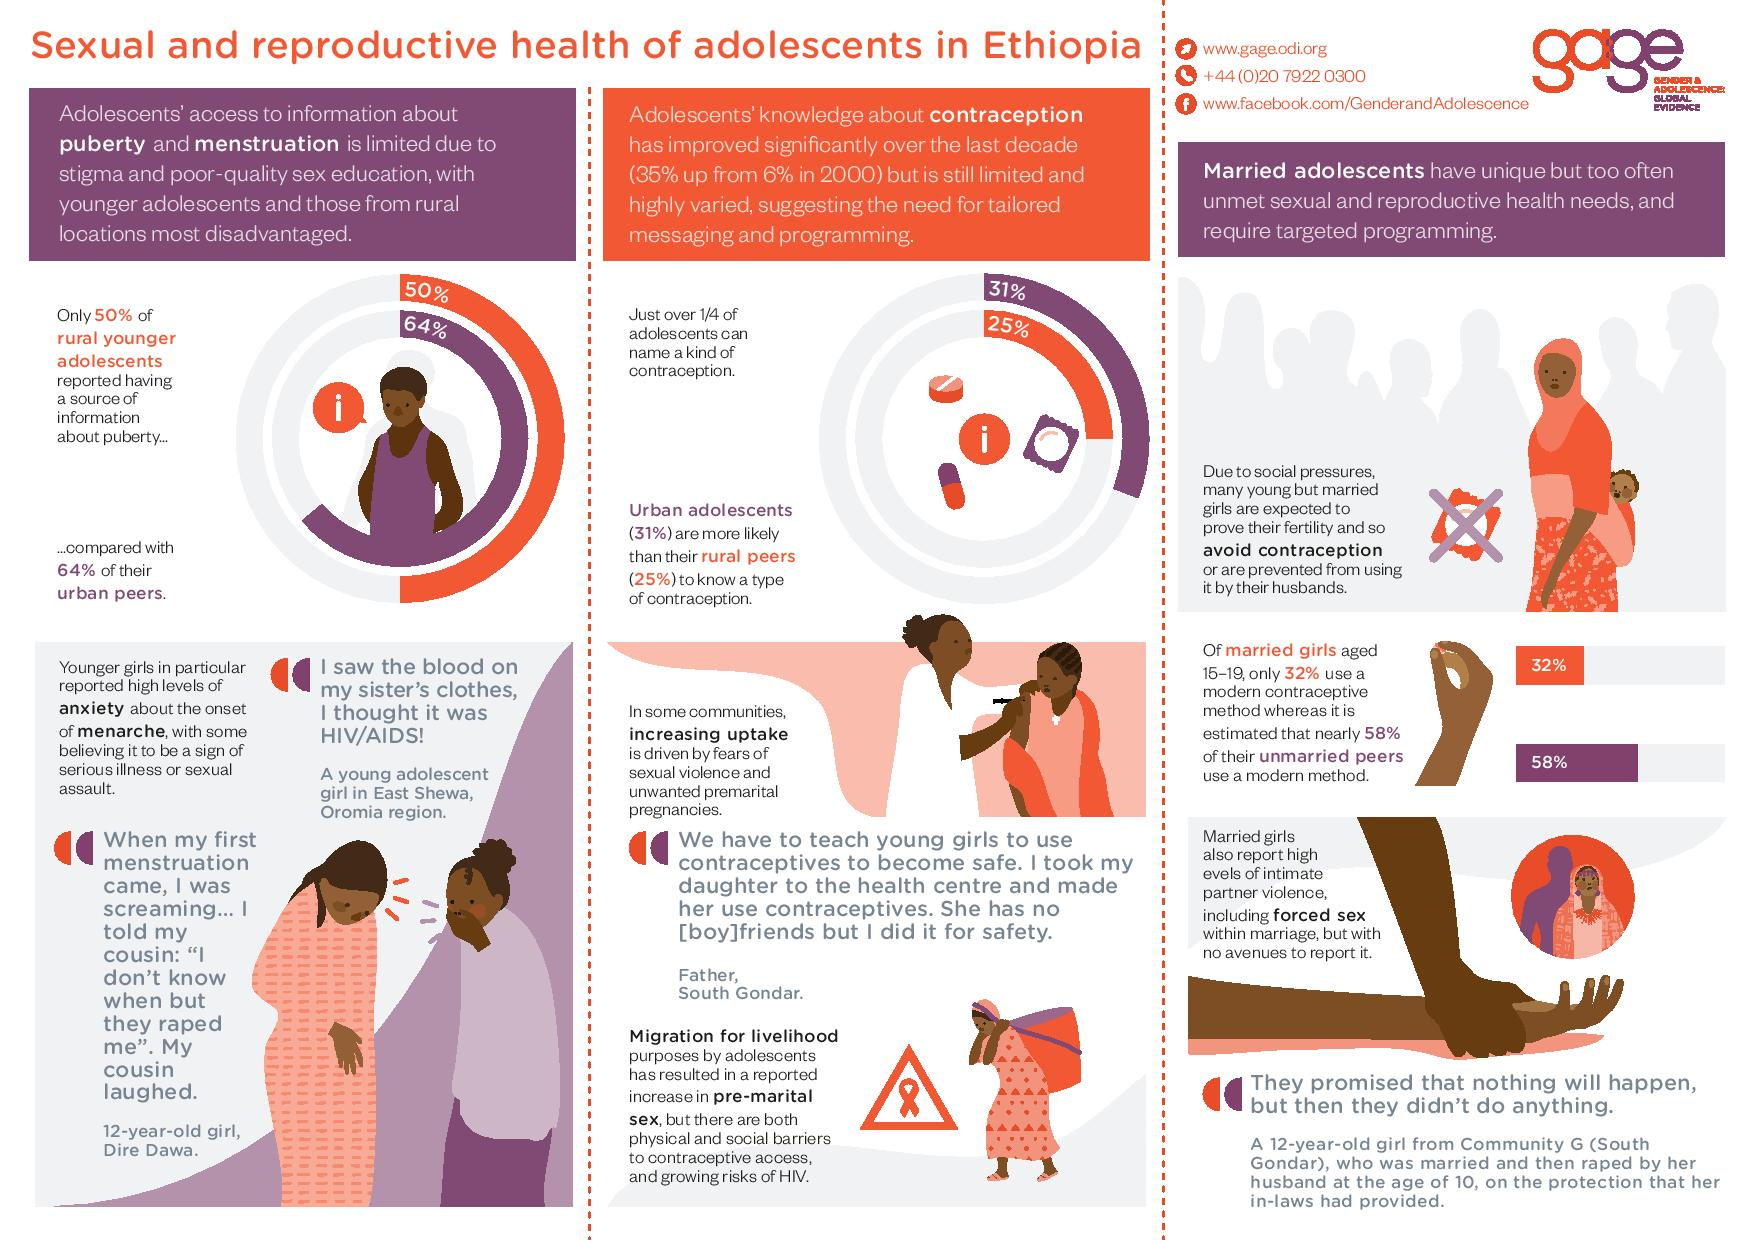 Sexual and reproductive health of adolescents in Ethiopia